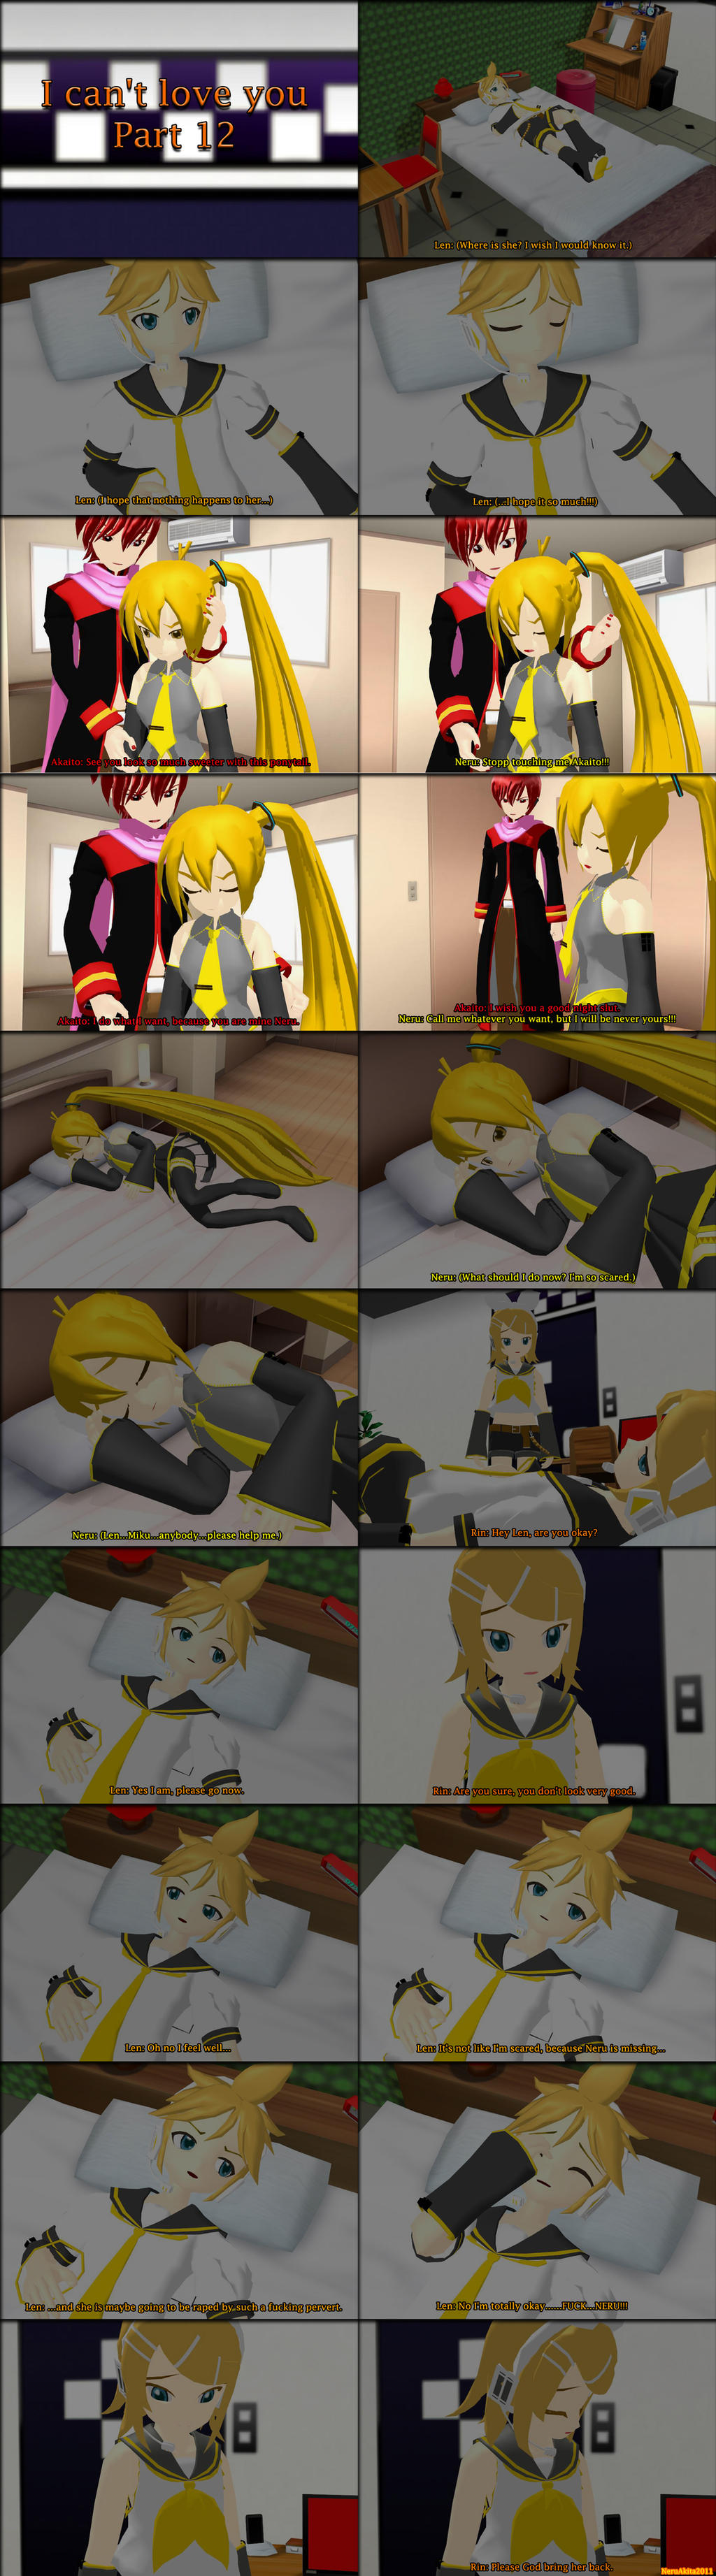 Mmd Neru X Len X Akaito I Can T Love You Part3 By - Imagez co